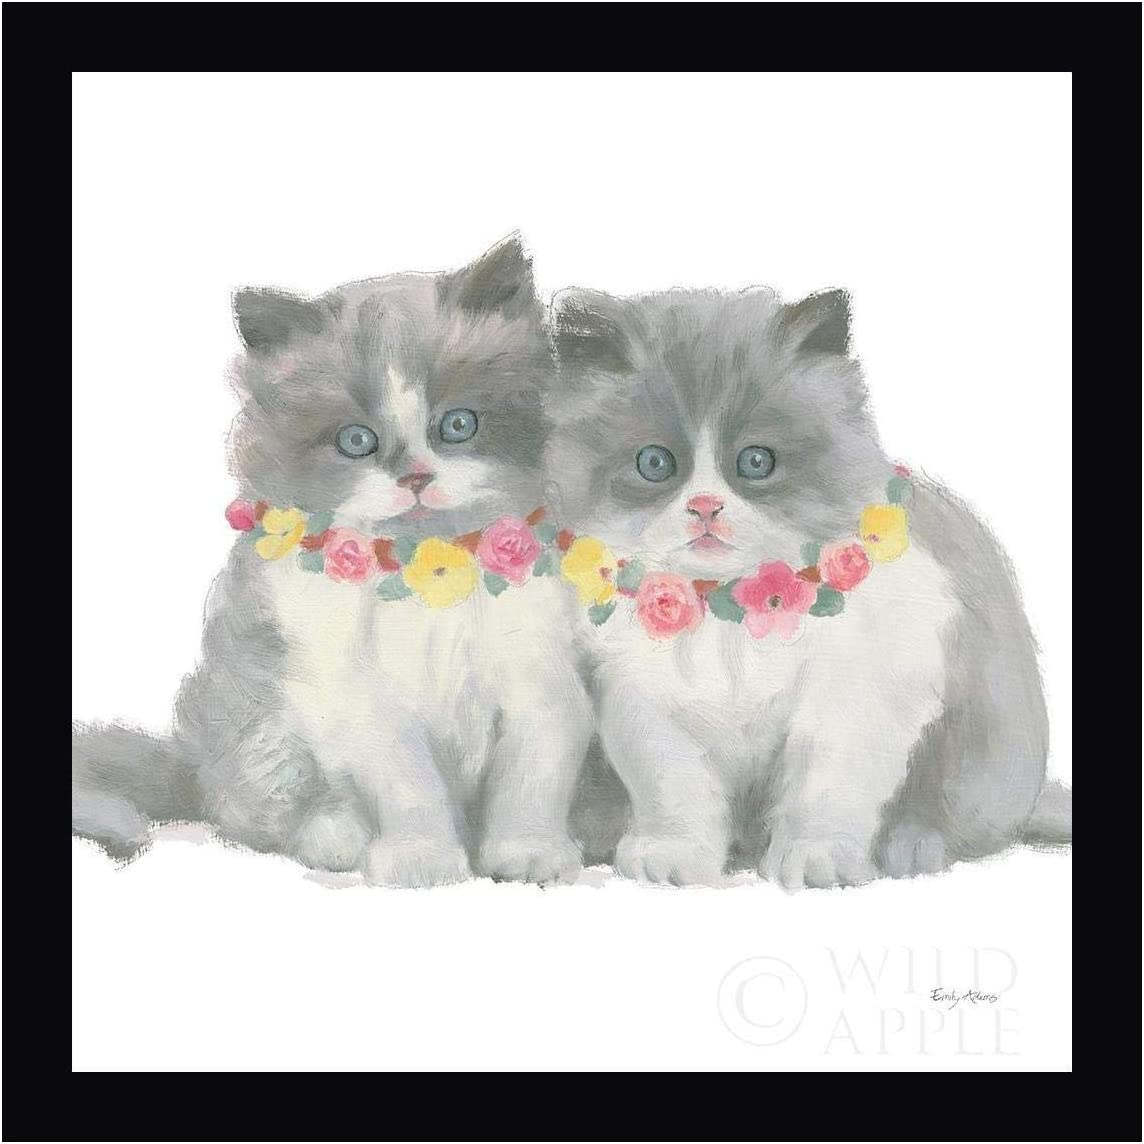 Cutie Kitties VIII by New product Emily Adams Max 48% OFF - Canva Framed 20